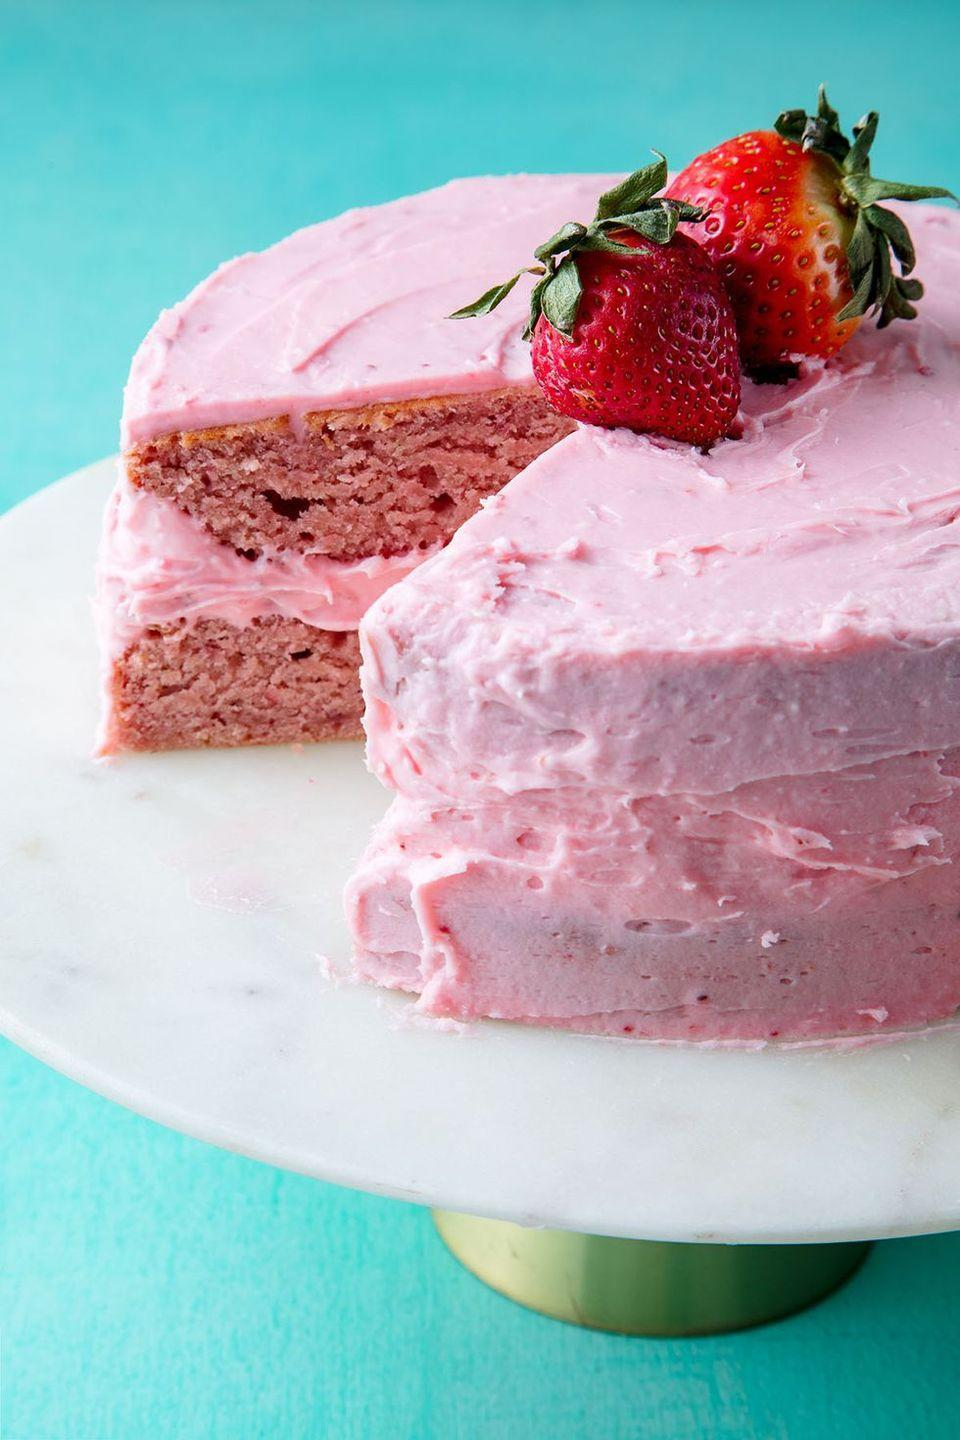 """<p>This is the best thing you can do with strawberries.</p><p>Get the recipe from <a href=""""https://www.delish.com/cooking/recipe-ideas/a19624120/homemade-strawberry-cake-recipe/"""" rel=""""nofollow noopener"""" target=""""_blank"""" data-ylk=""""slk:Delish"""" class=""""link rapid-noclick-resp"""">Delish</a>. </p>"""